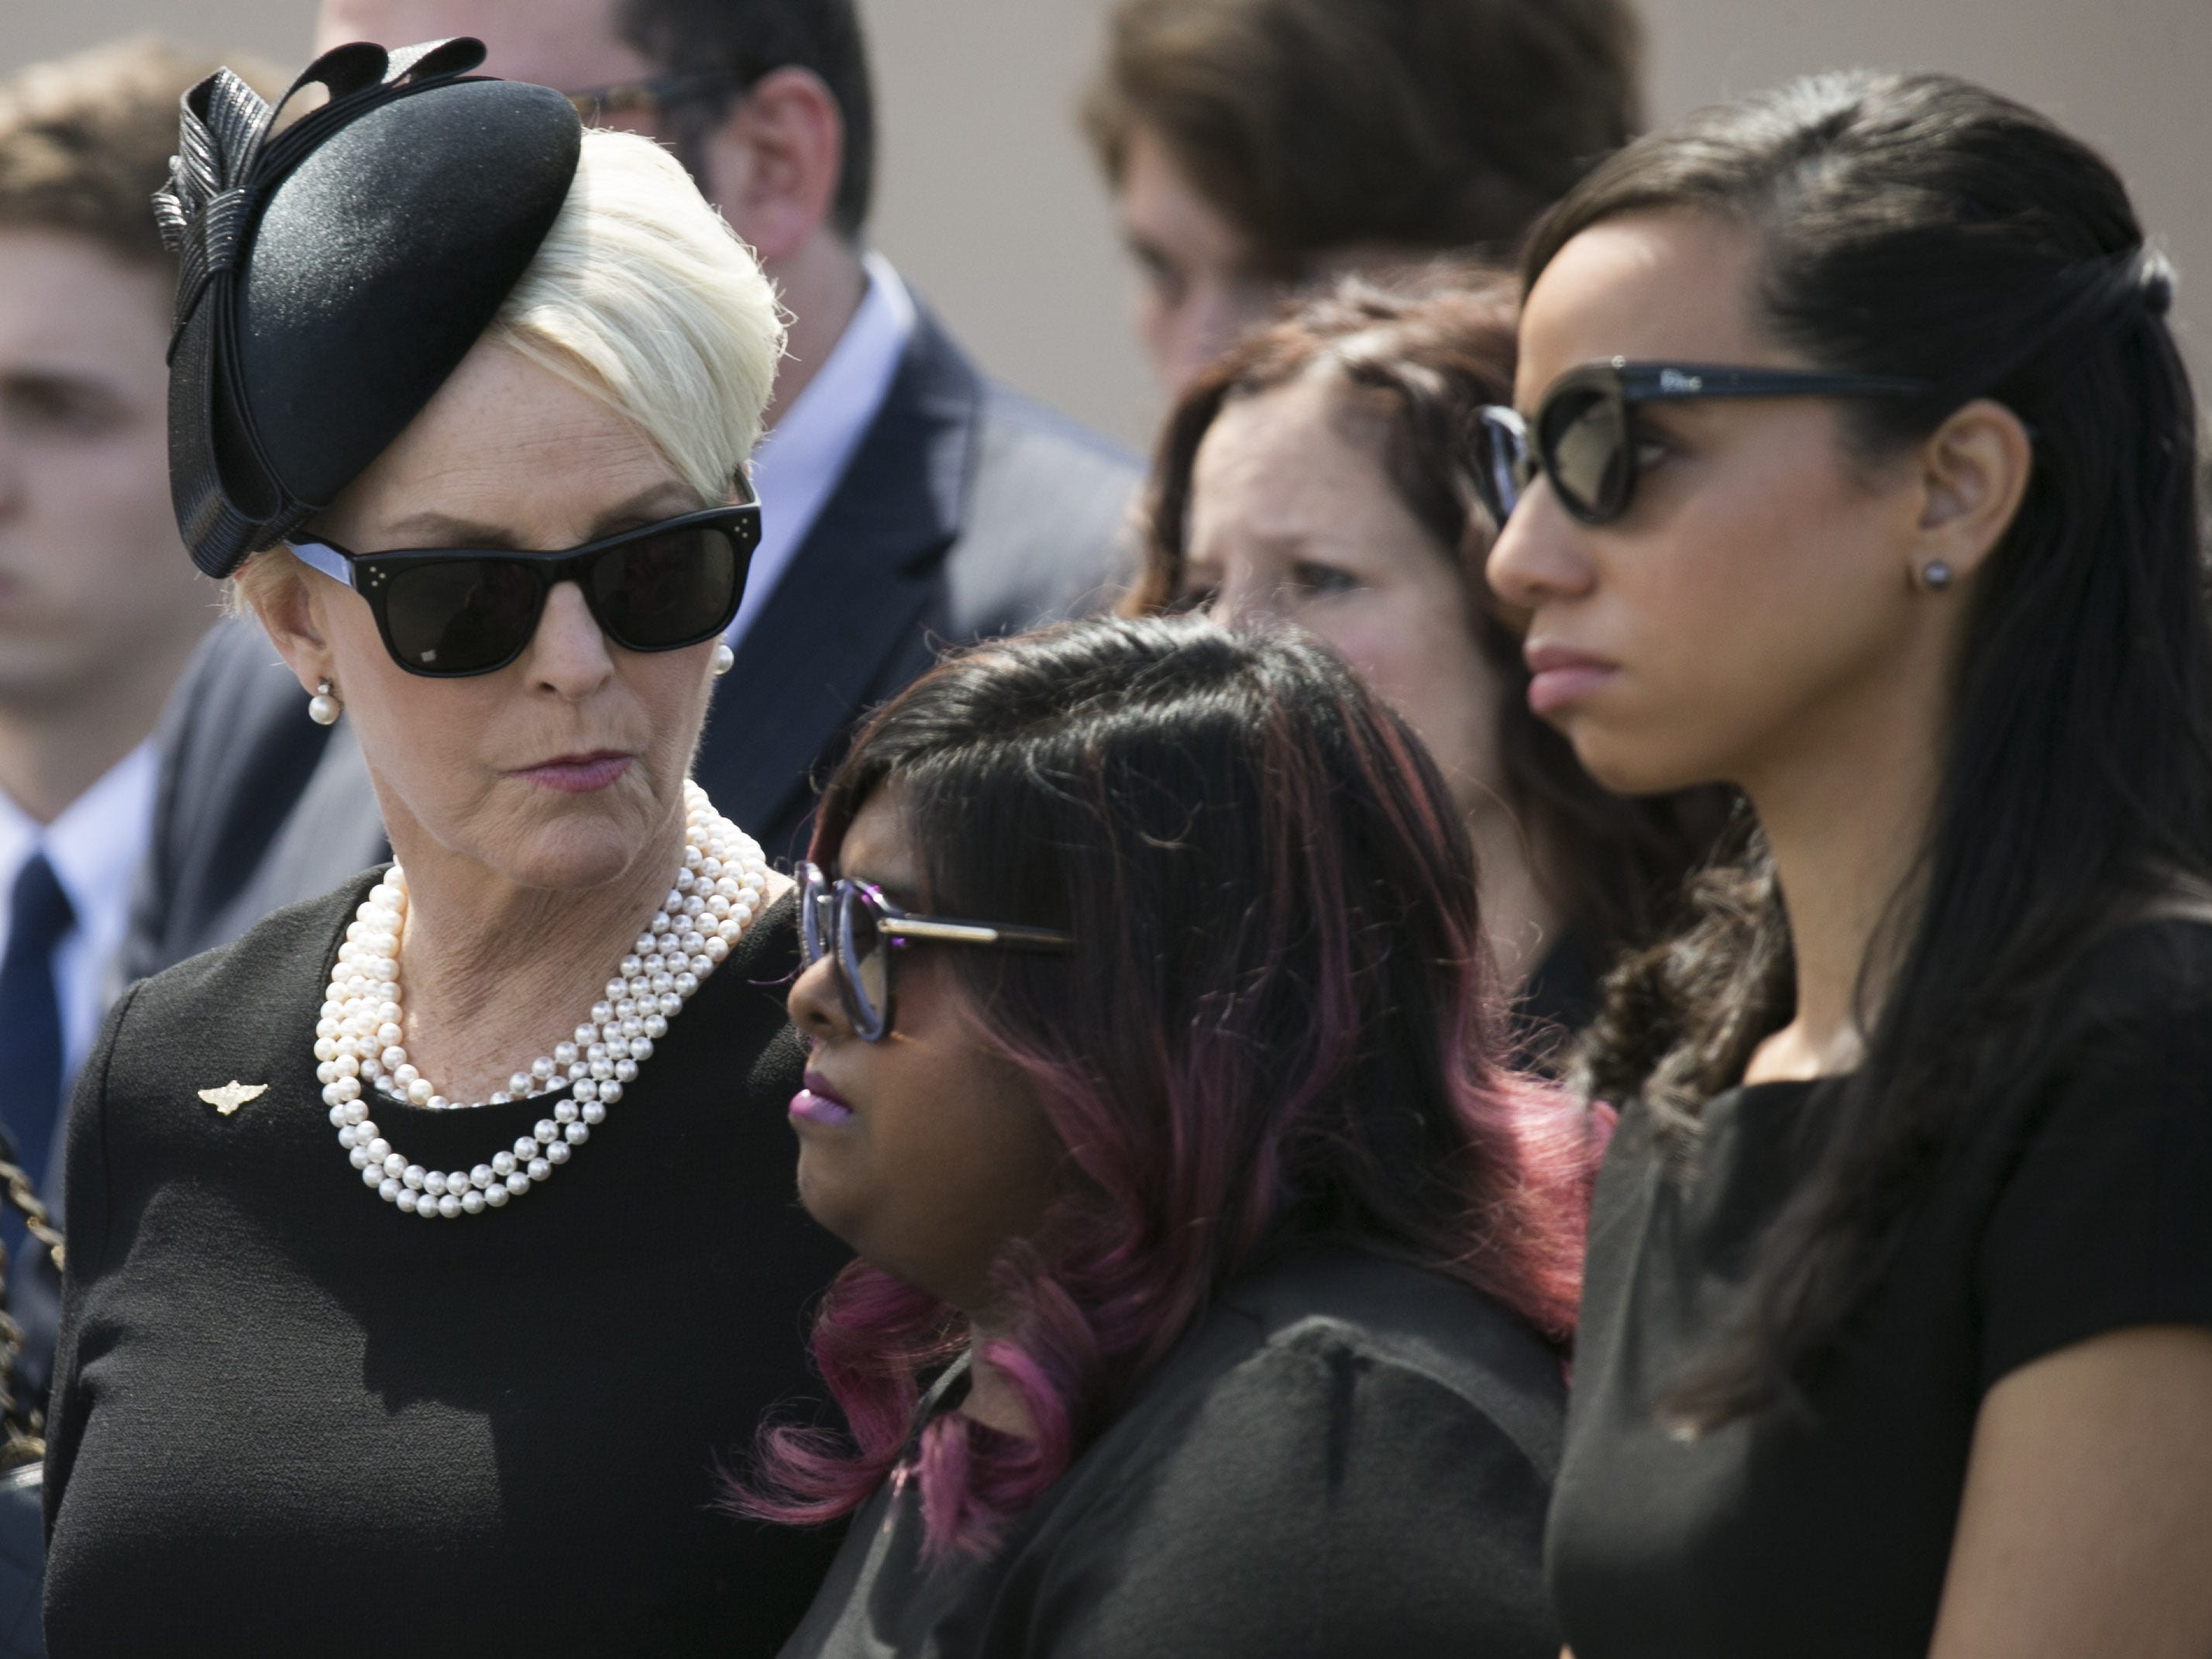 Cindy McCain looks at her daughter, Bridget McCain, following a memorial service for their husband and father, Senator John McCain at North Phoenix Baptist Church in Phoenix, Aug. 30, 2018.